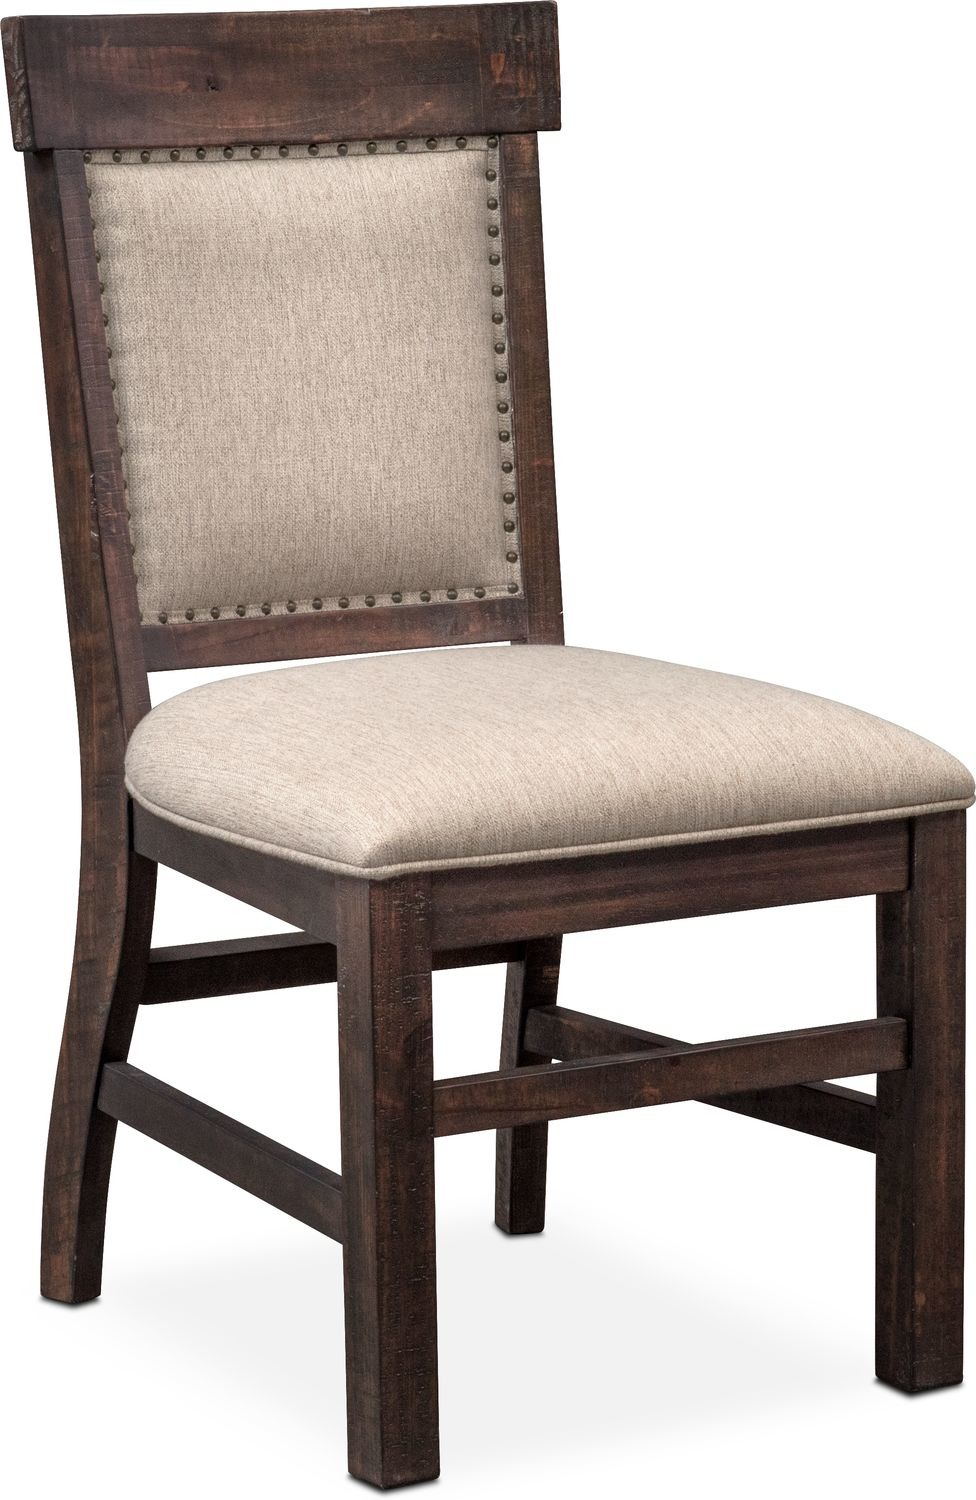 Dining Room Chairs | Seating | Value City